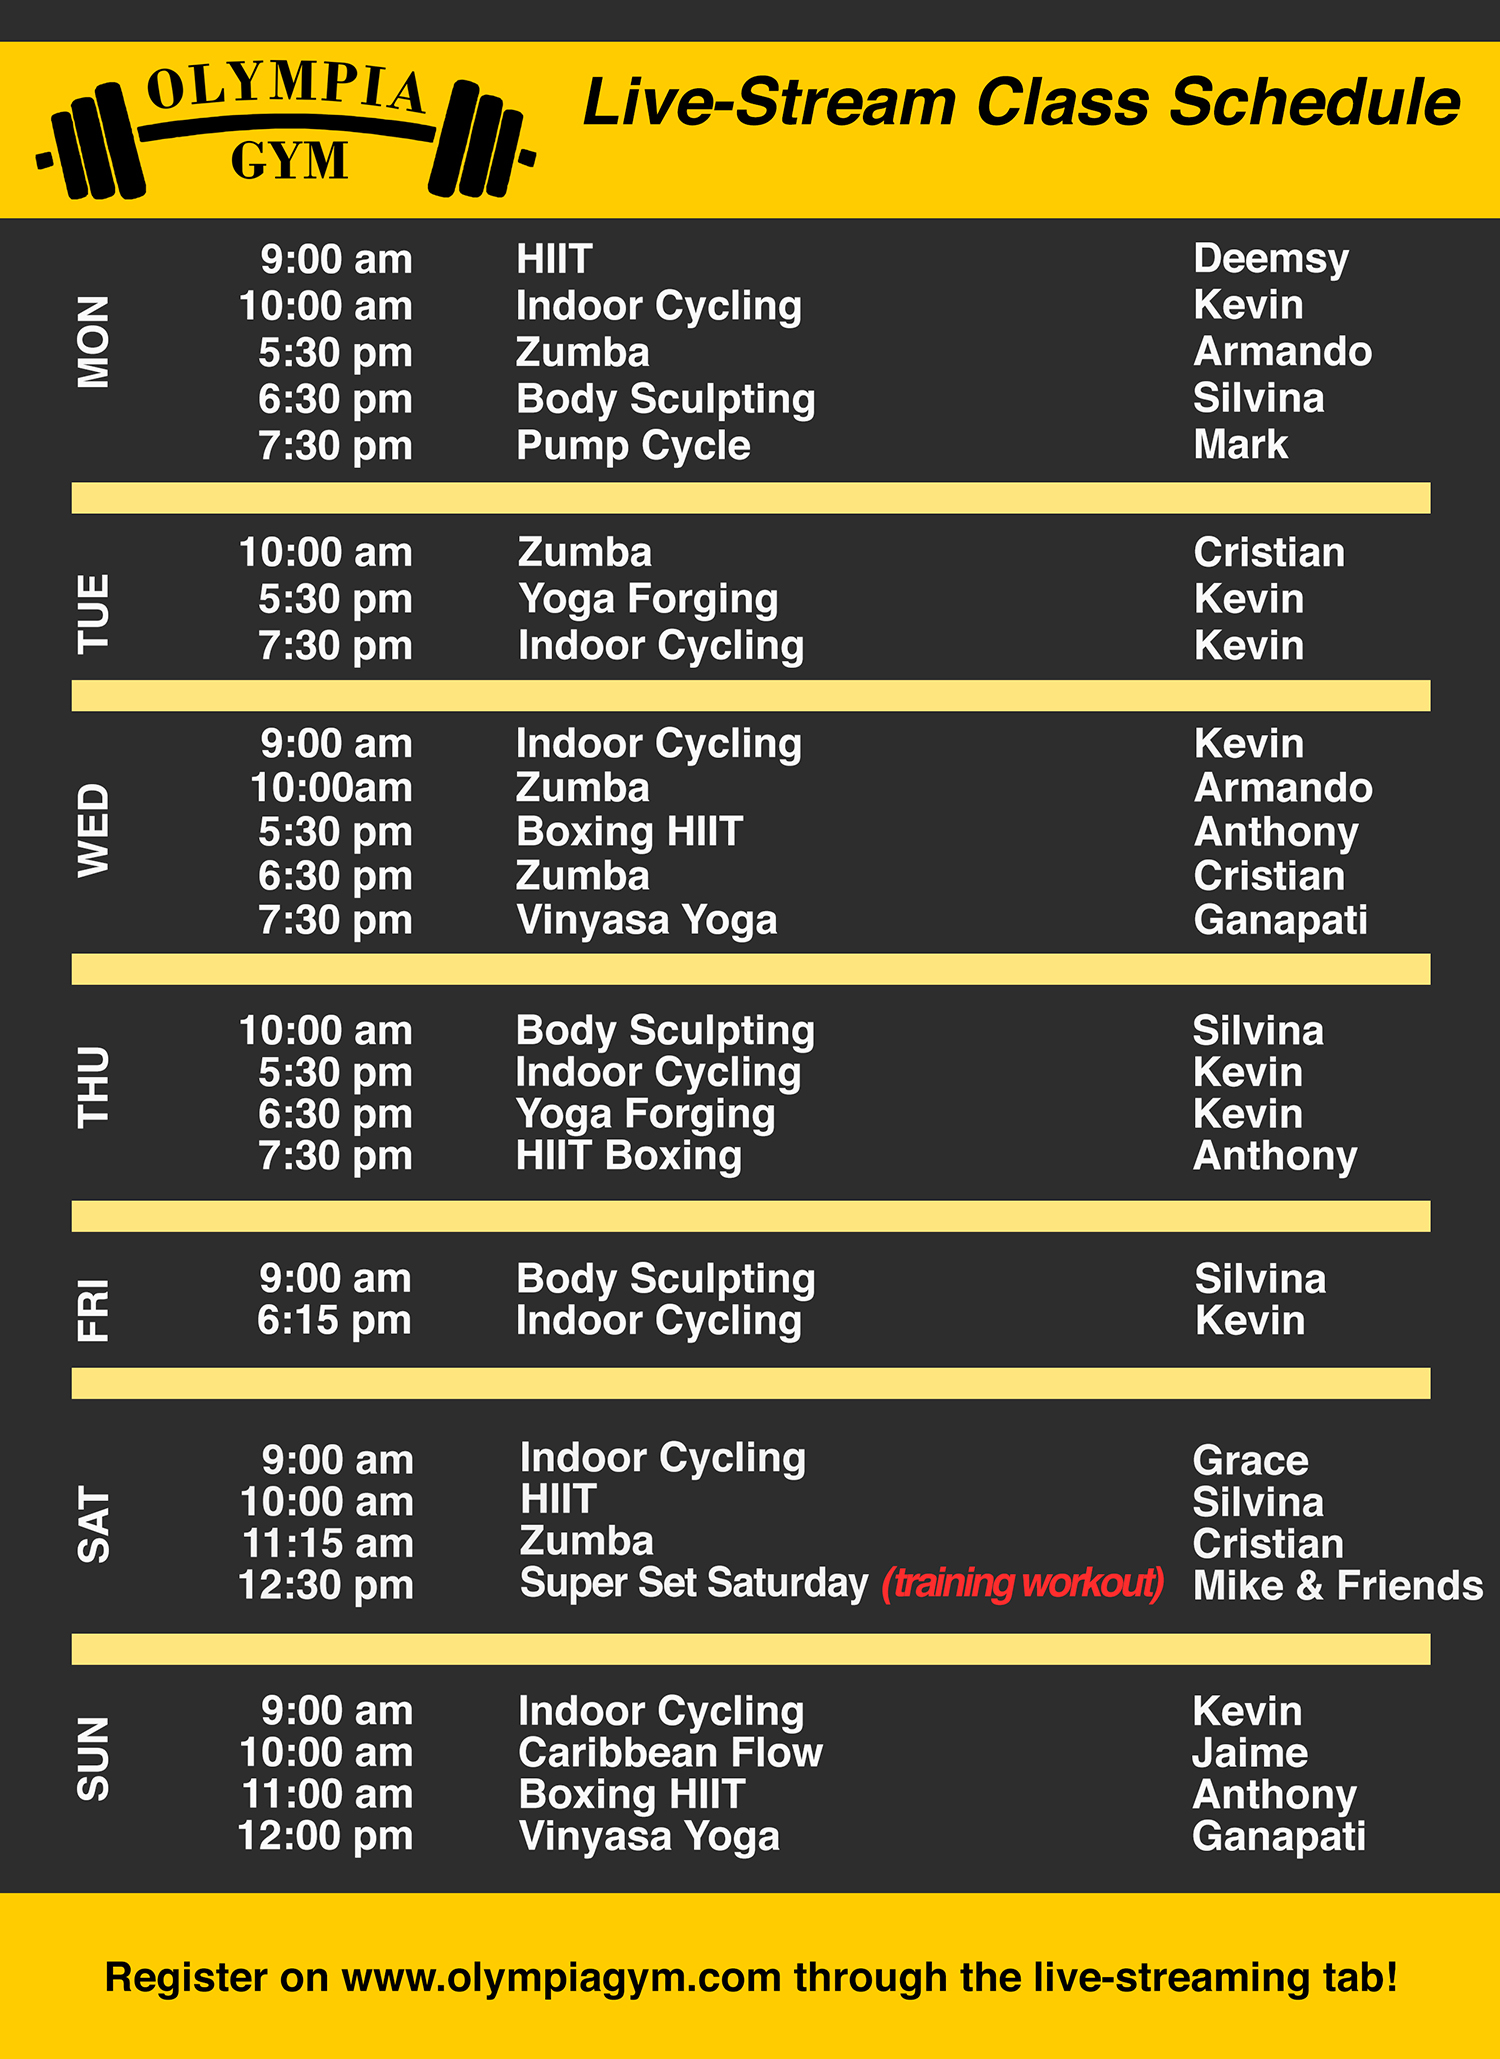 Live-Stream Group Fitness Classes at Olympia Gym & Personal Training Center